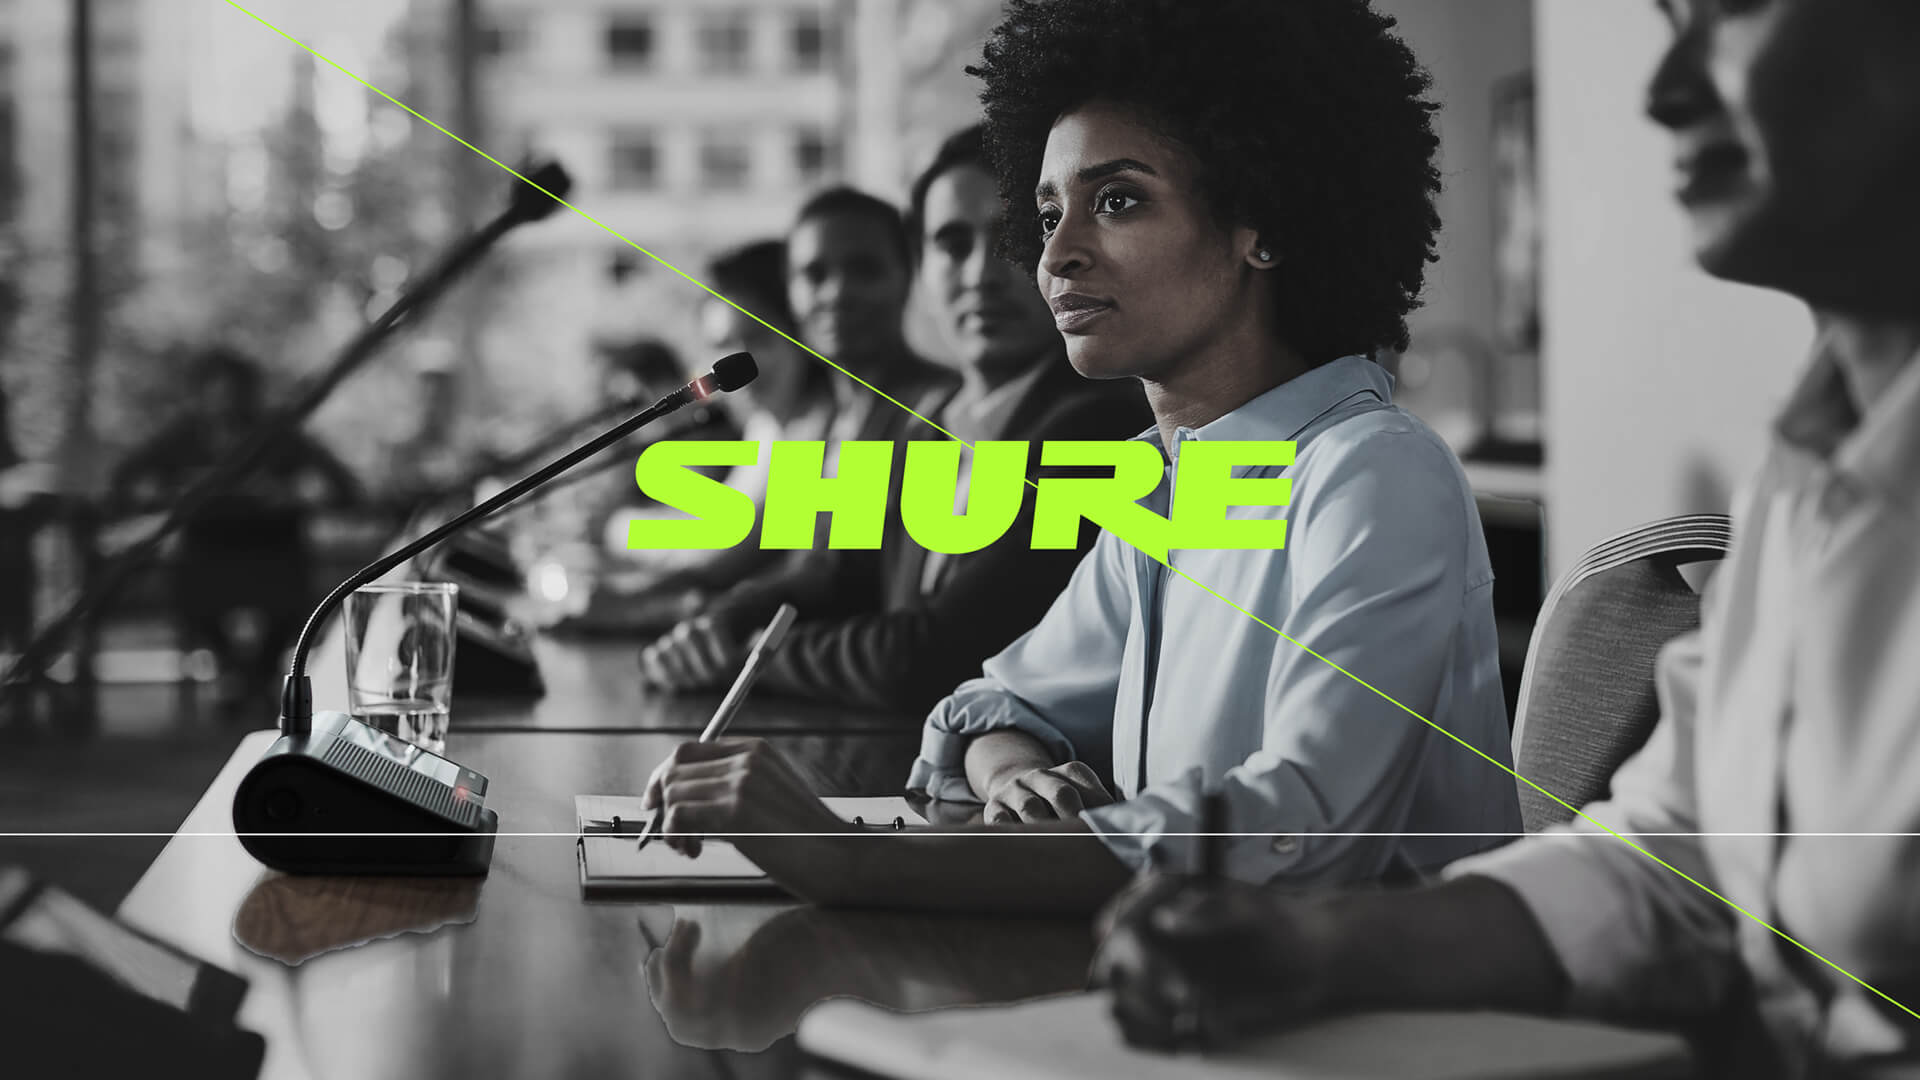 Shure Roadshow